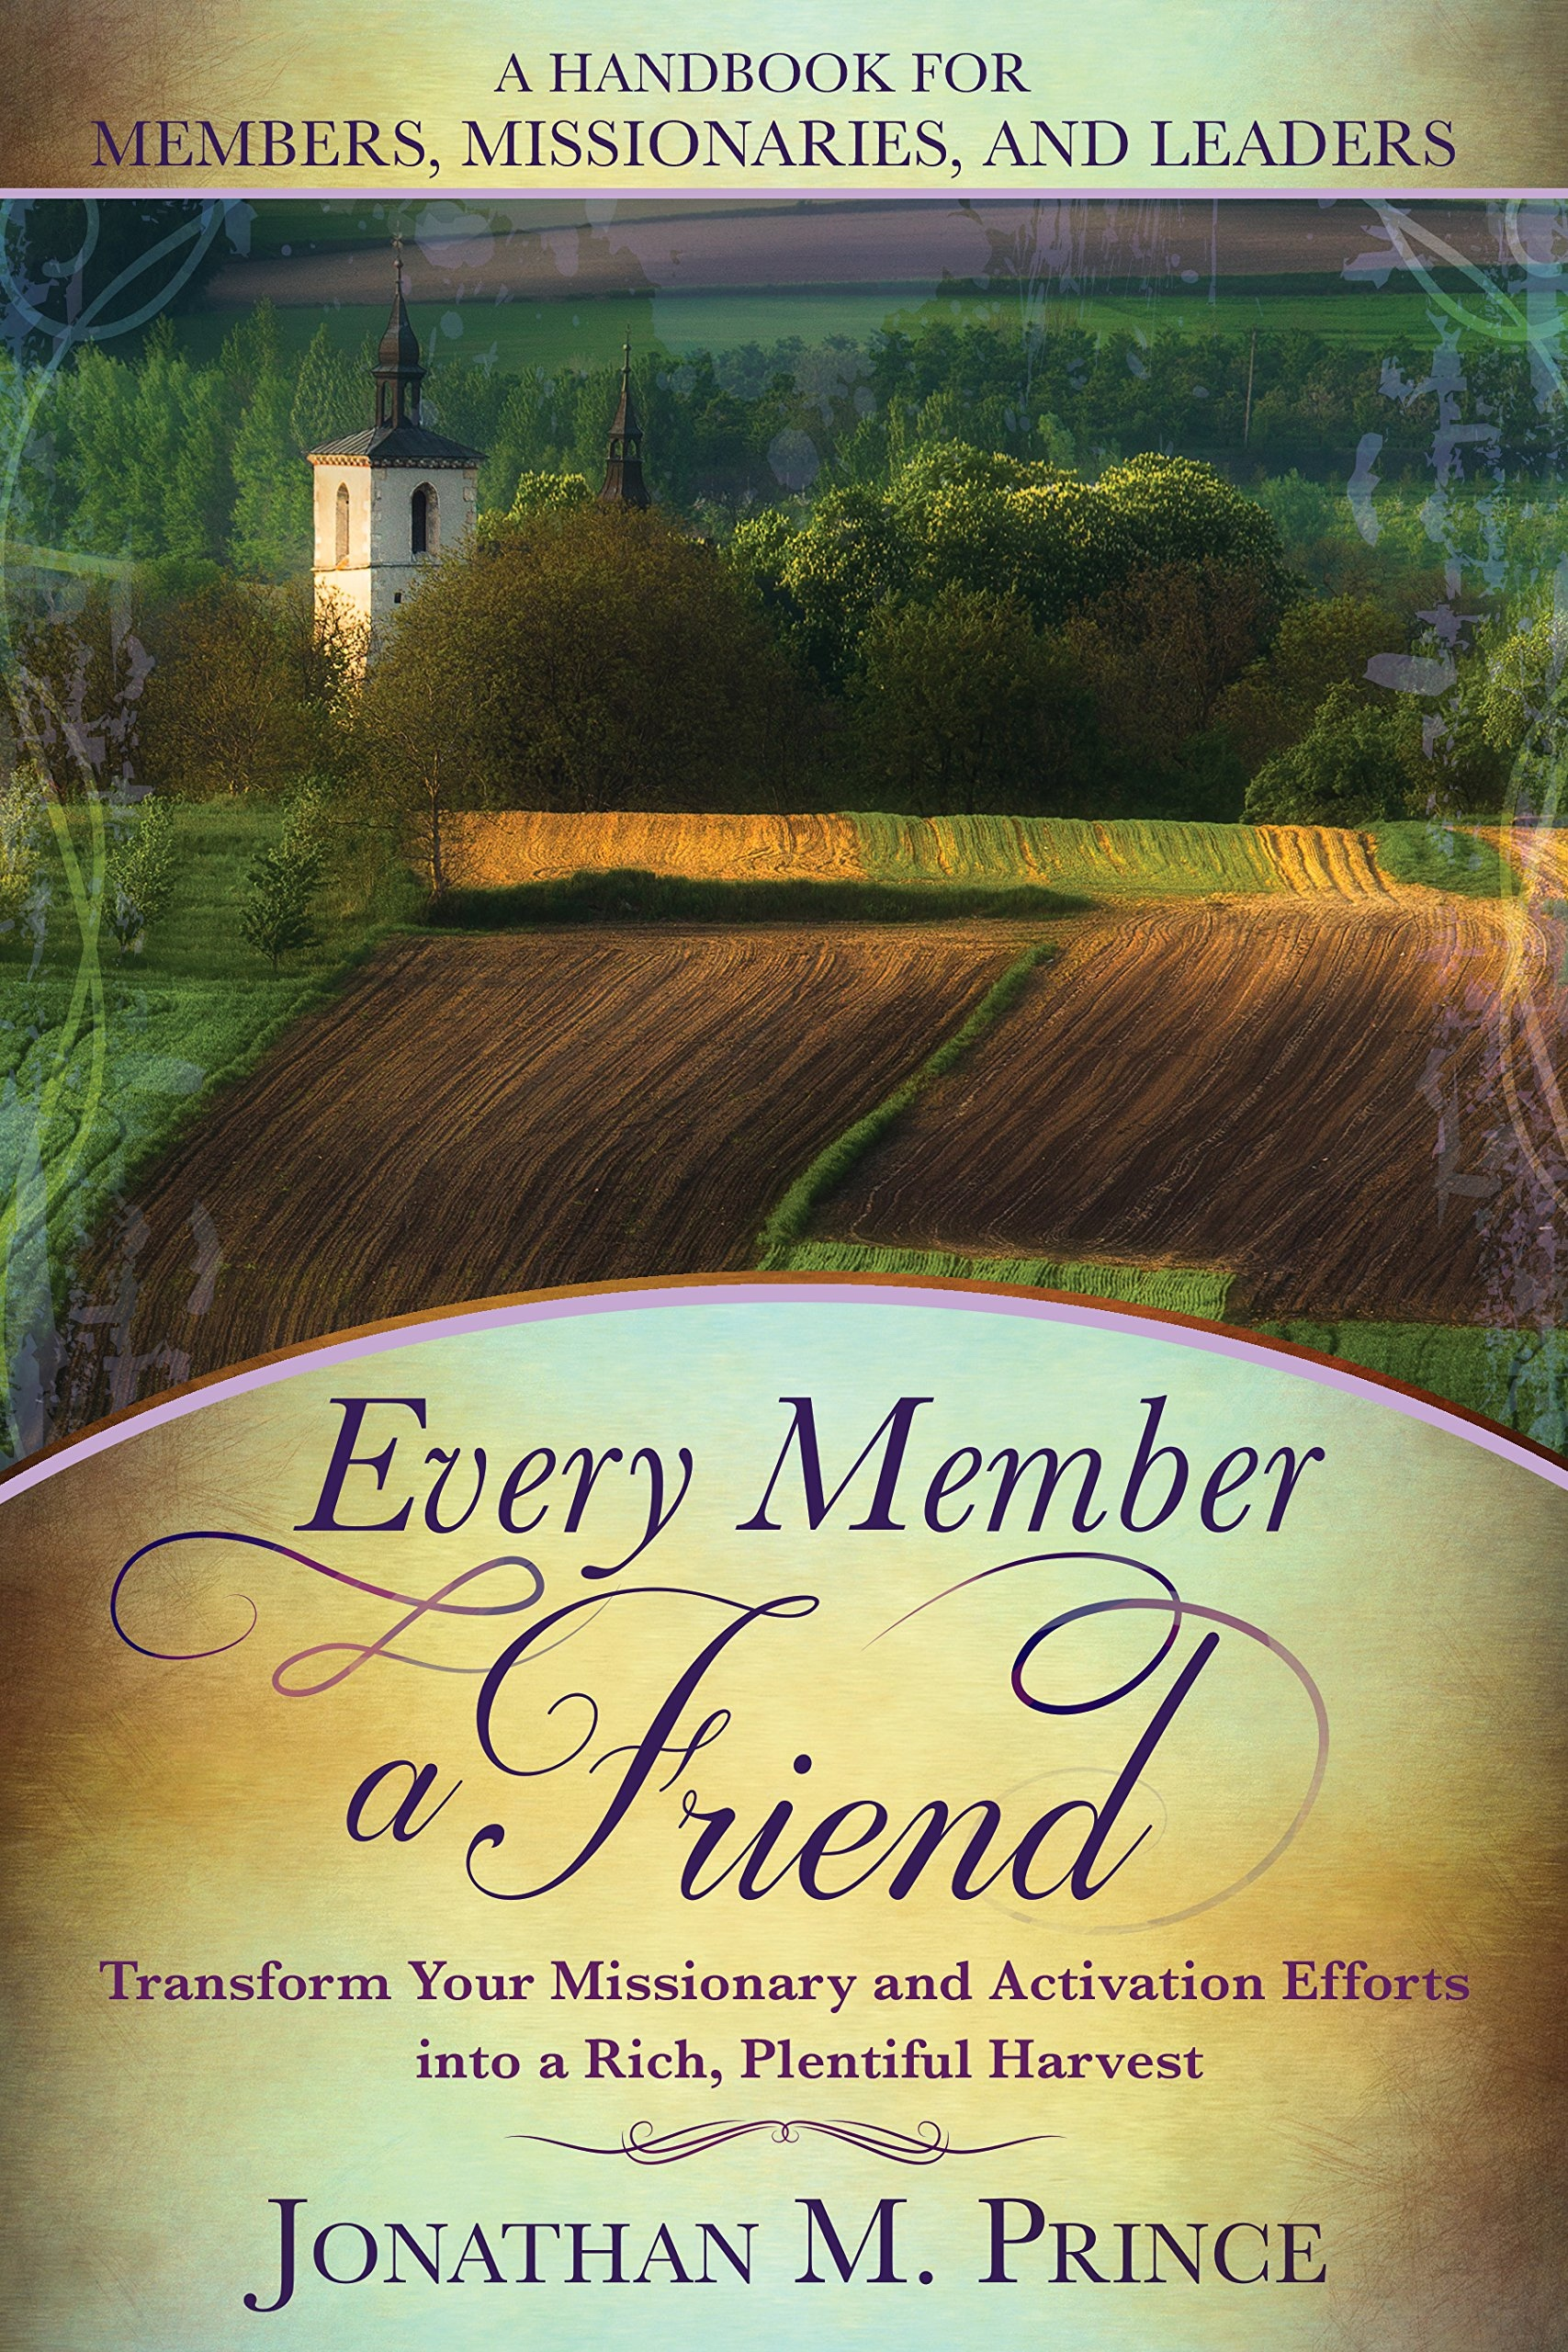 Every Member a Friend, A Handbook for Members, Missionaries and Leaders, Prince, Jonathan M.